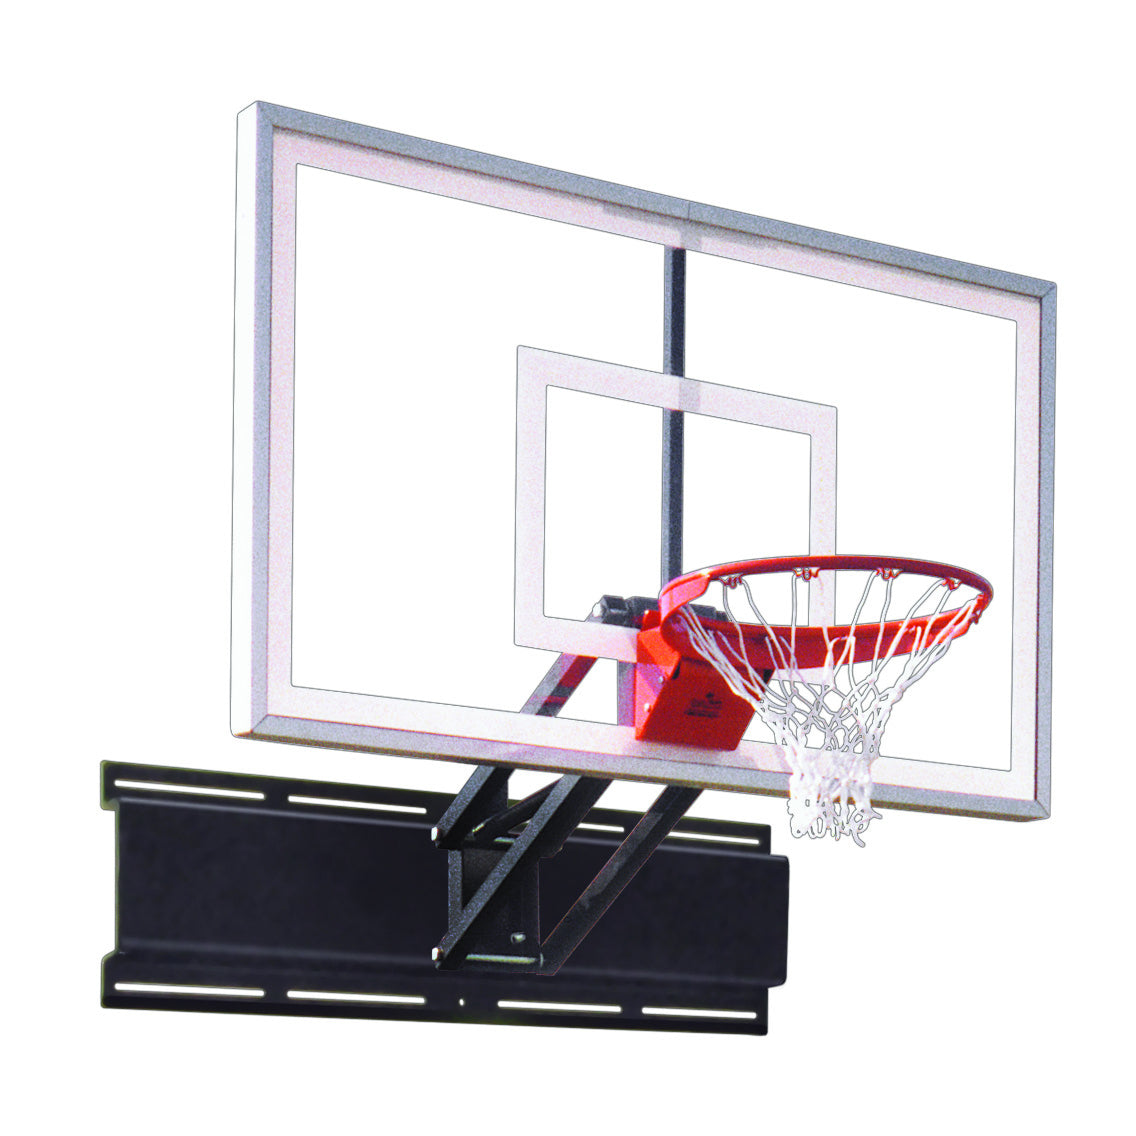 "First Team Uni-Champ Select Wall Mount Adjustable Basketball Hoop 36""x 60"""